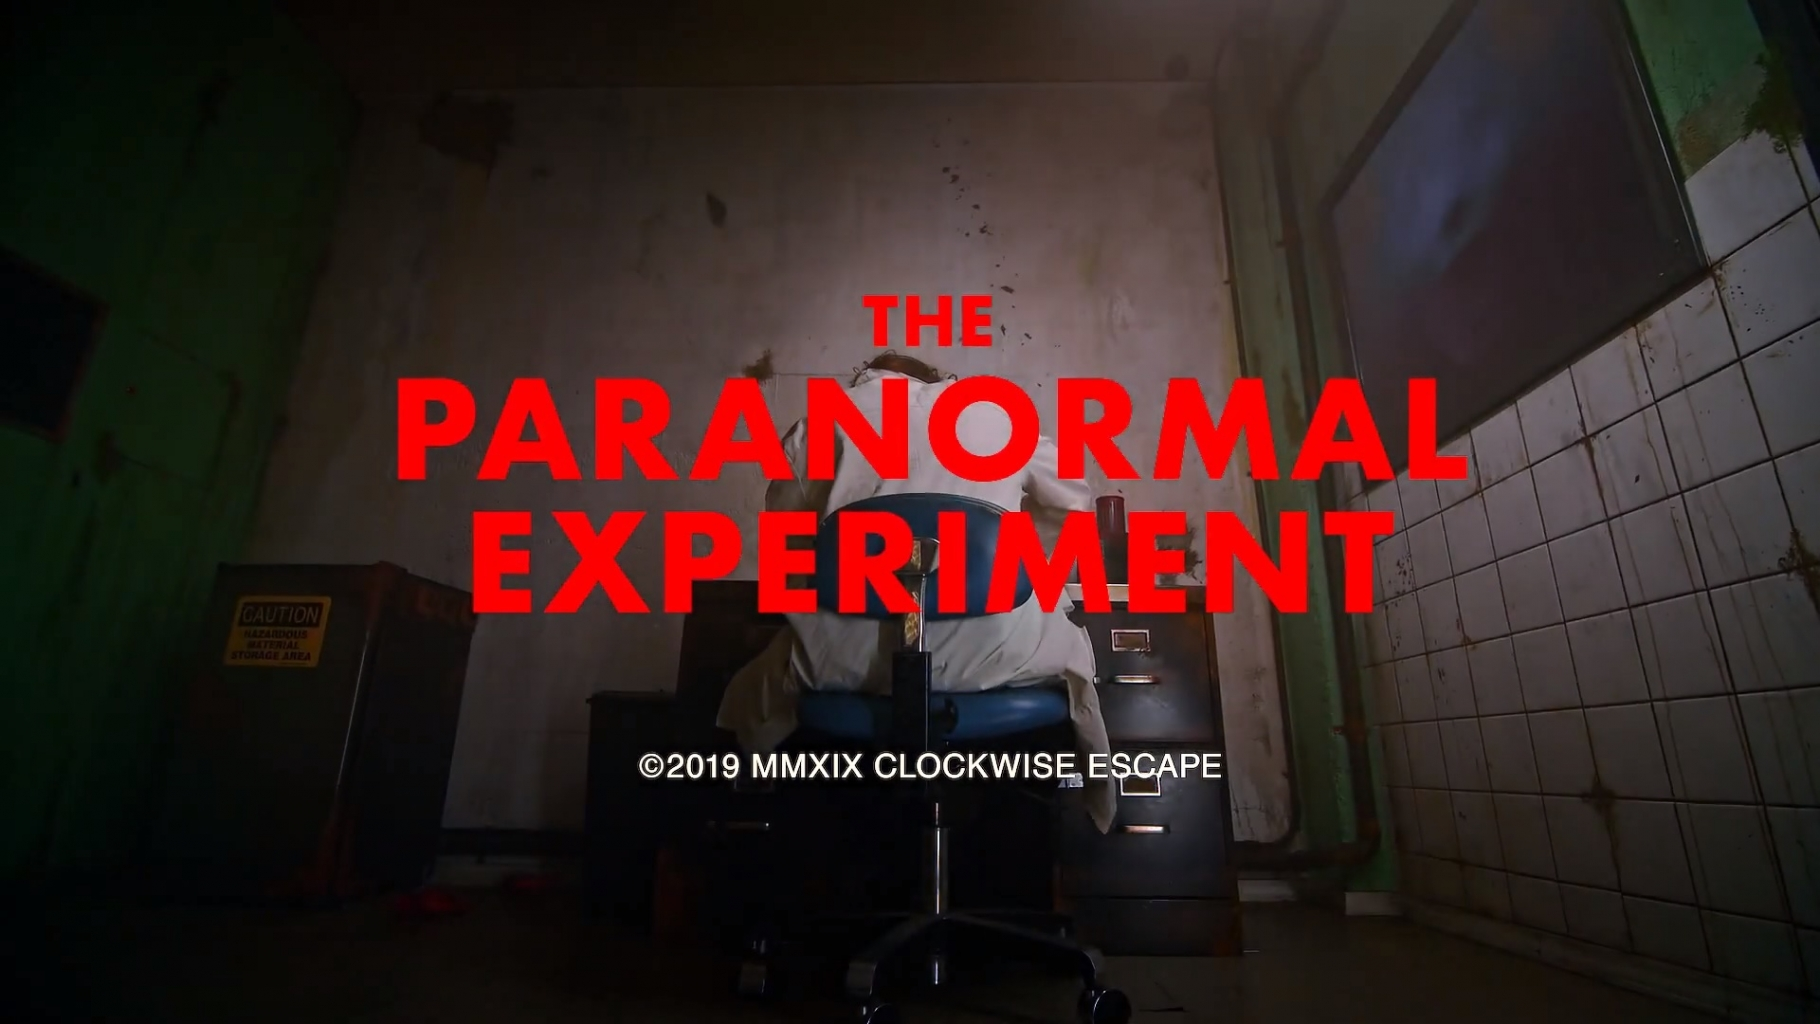 The Paranormal Experiment